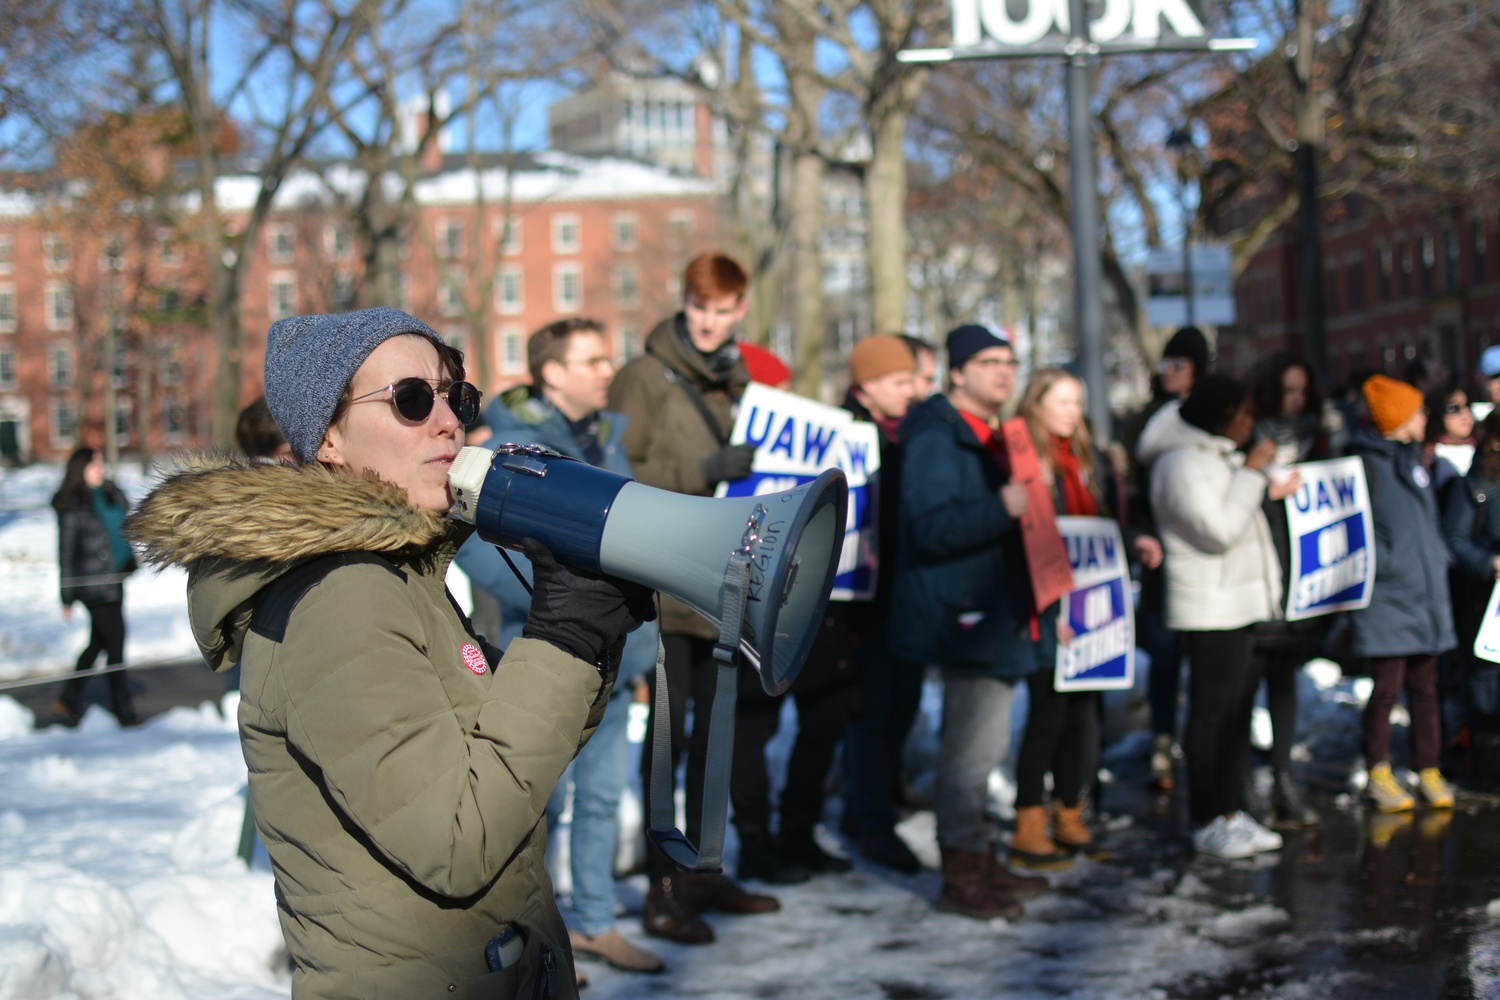 Thursday marked the third full day of the graduate union's strike. At various points local politicians, members of other unions, and University administrators have attended or observed the picket line.